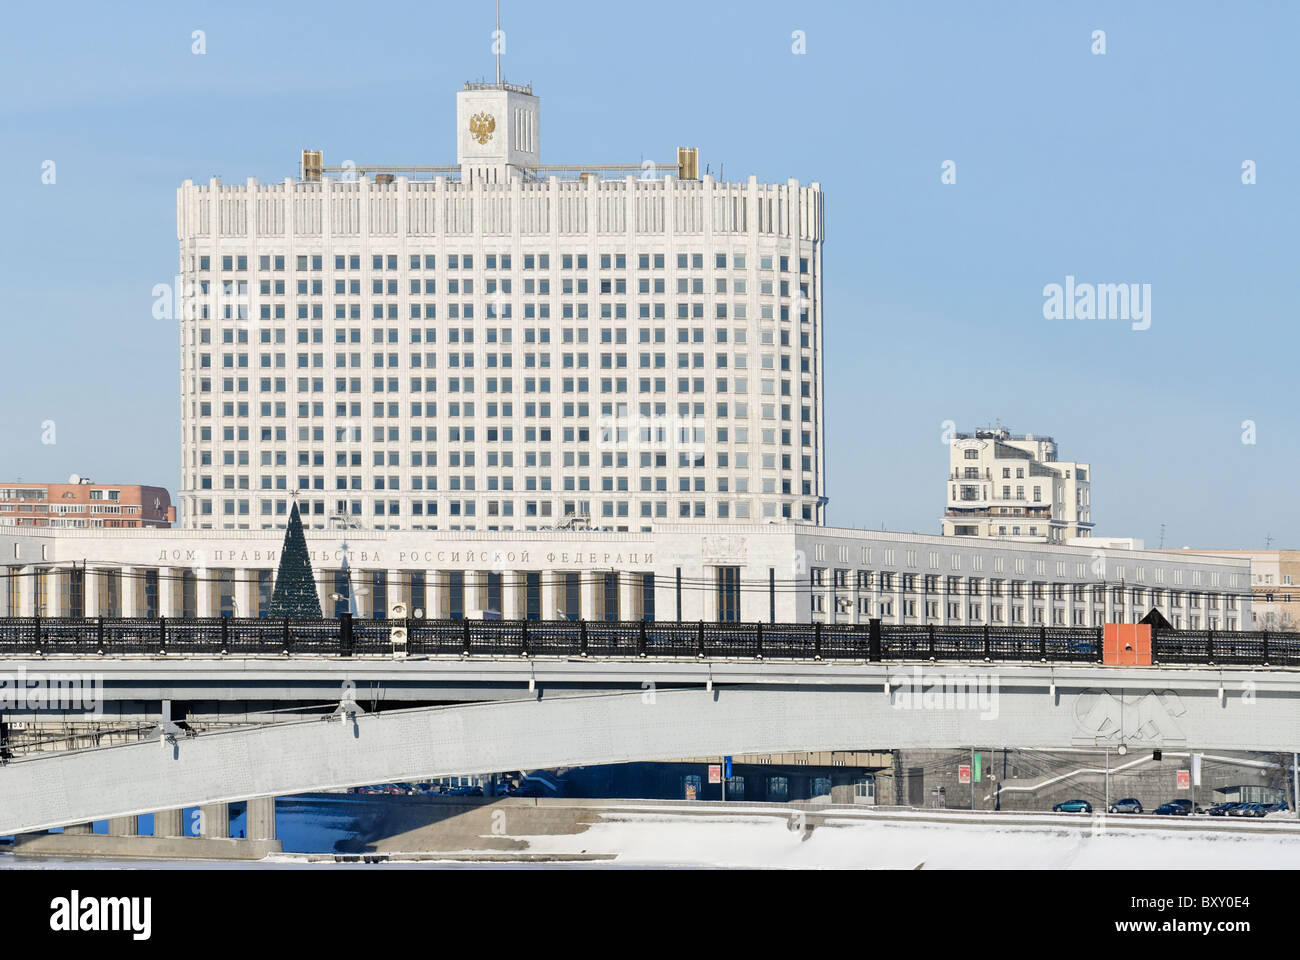 Government of the Russian Federation: The minimum length of service for labor pensions will be doubled 29.11.2012 58